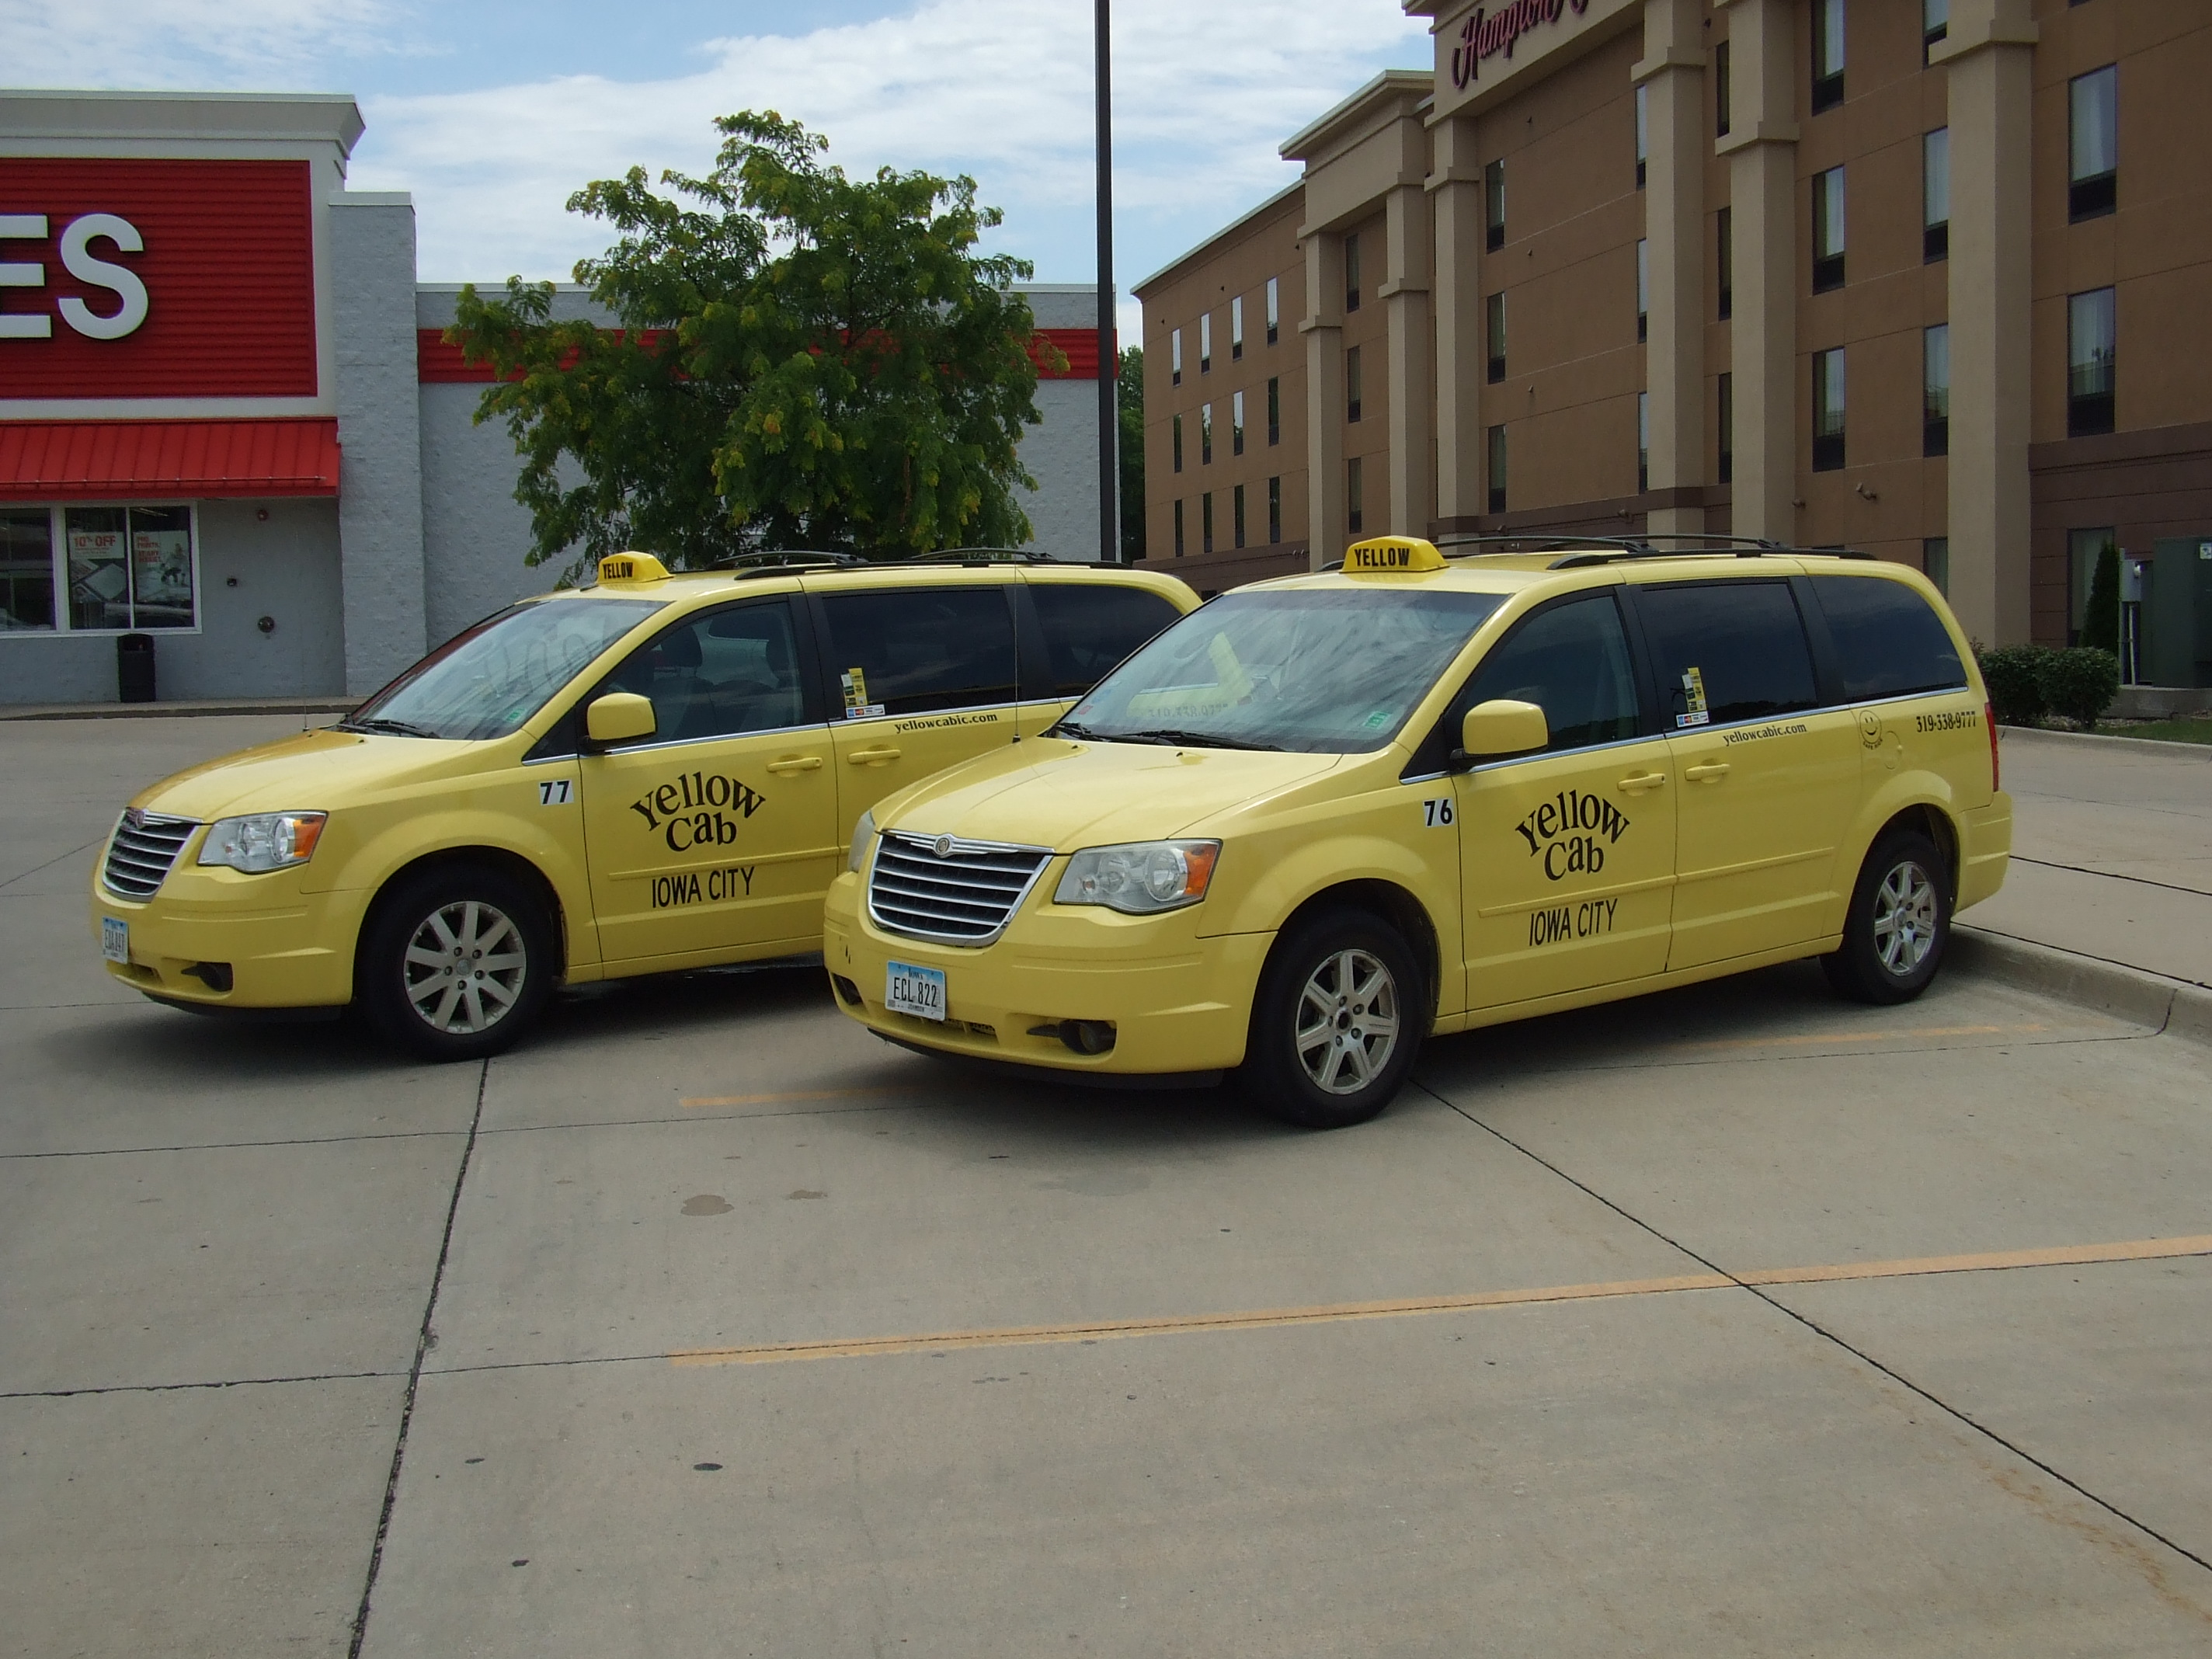 Iowa City Cab | Yellow Cab of Iowa City